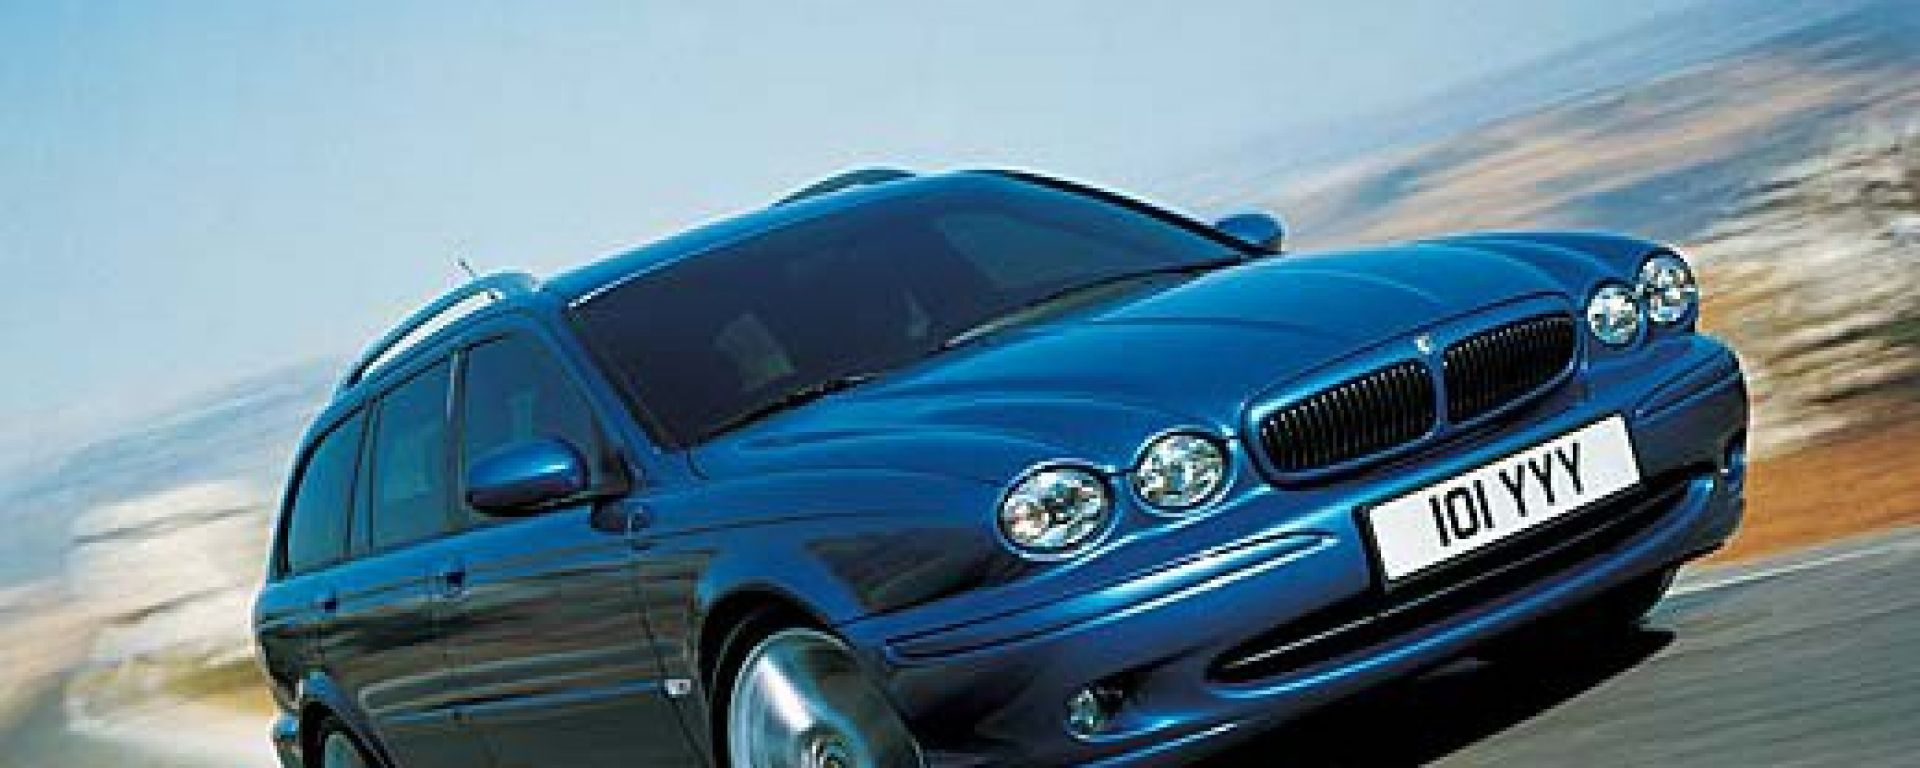 Jaguar X-type Wagon